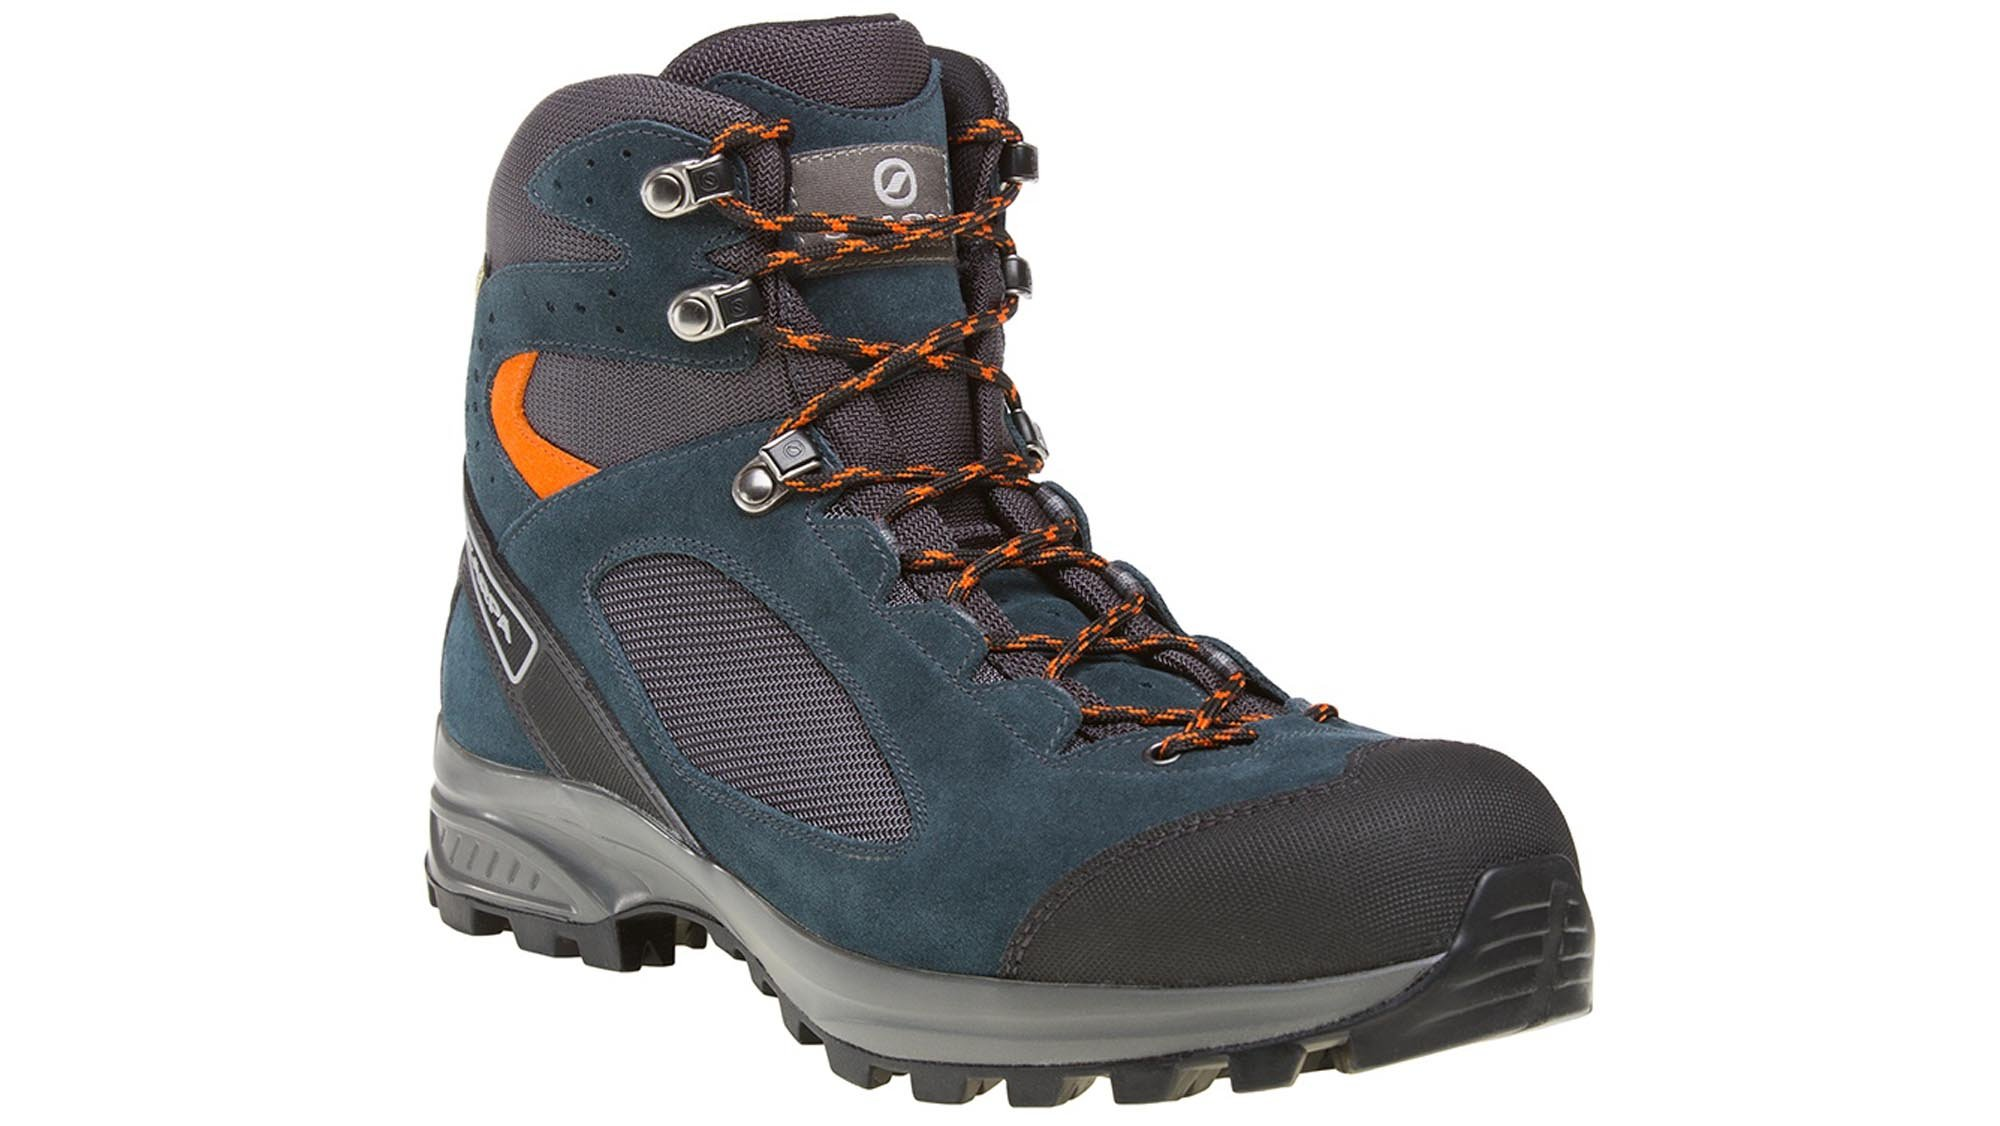 Best Hiking Boots 2019 Walking Boots For Men And Women From 38